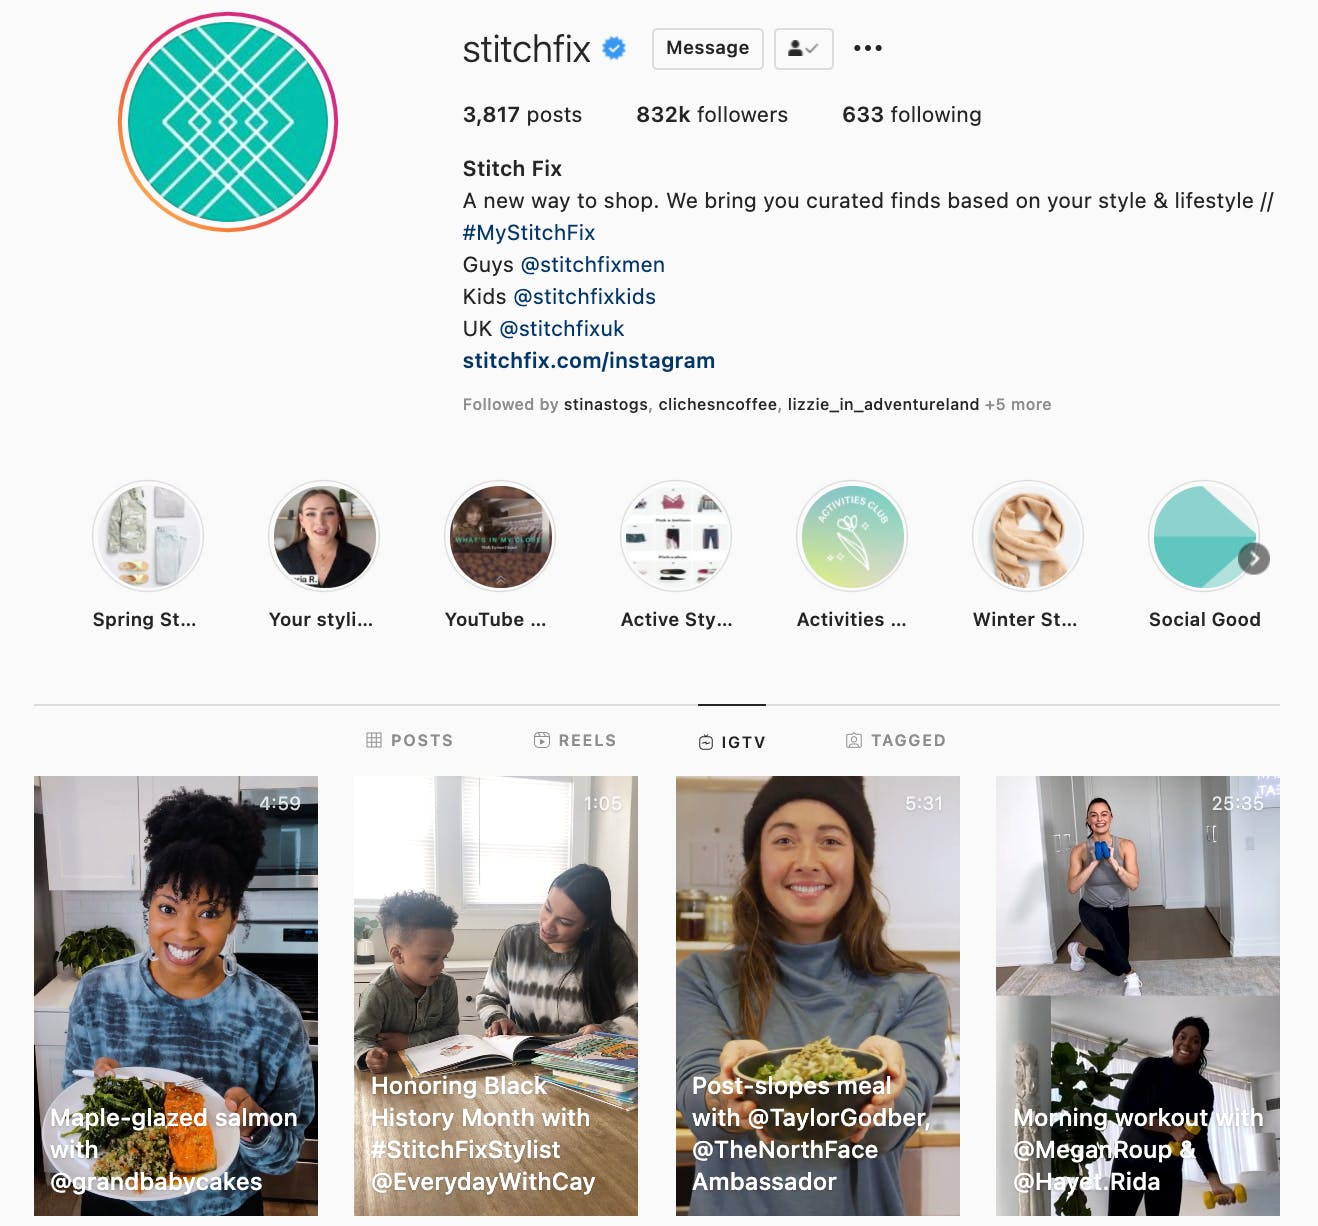 Example of a brand using IGTV as a way to highlight their brand ambassadors